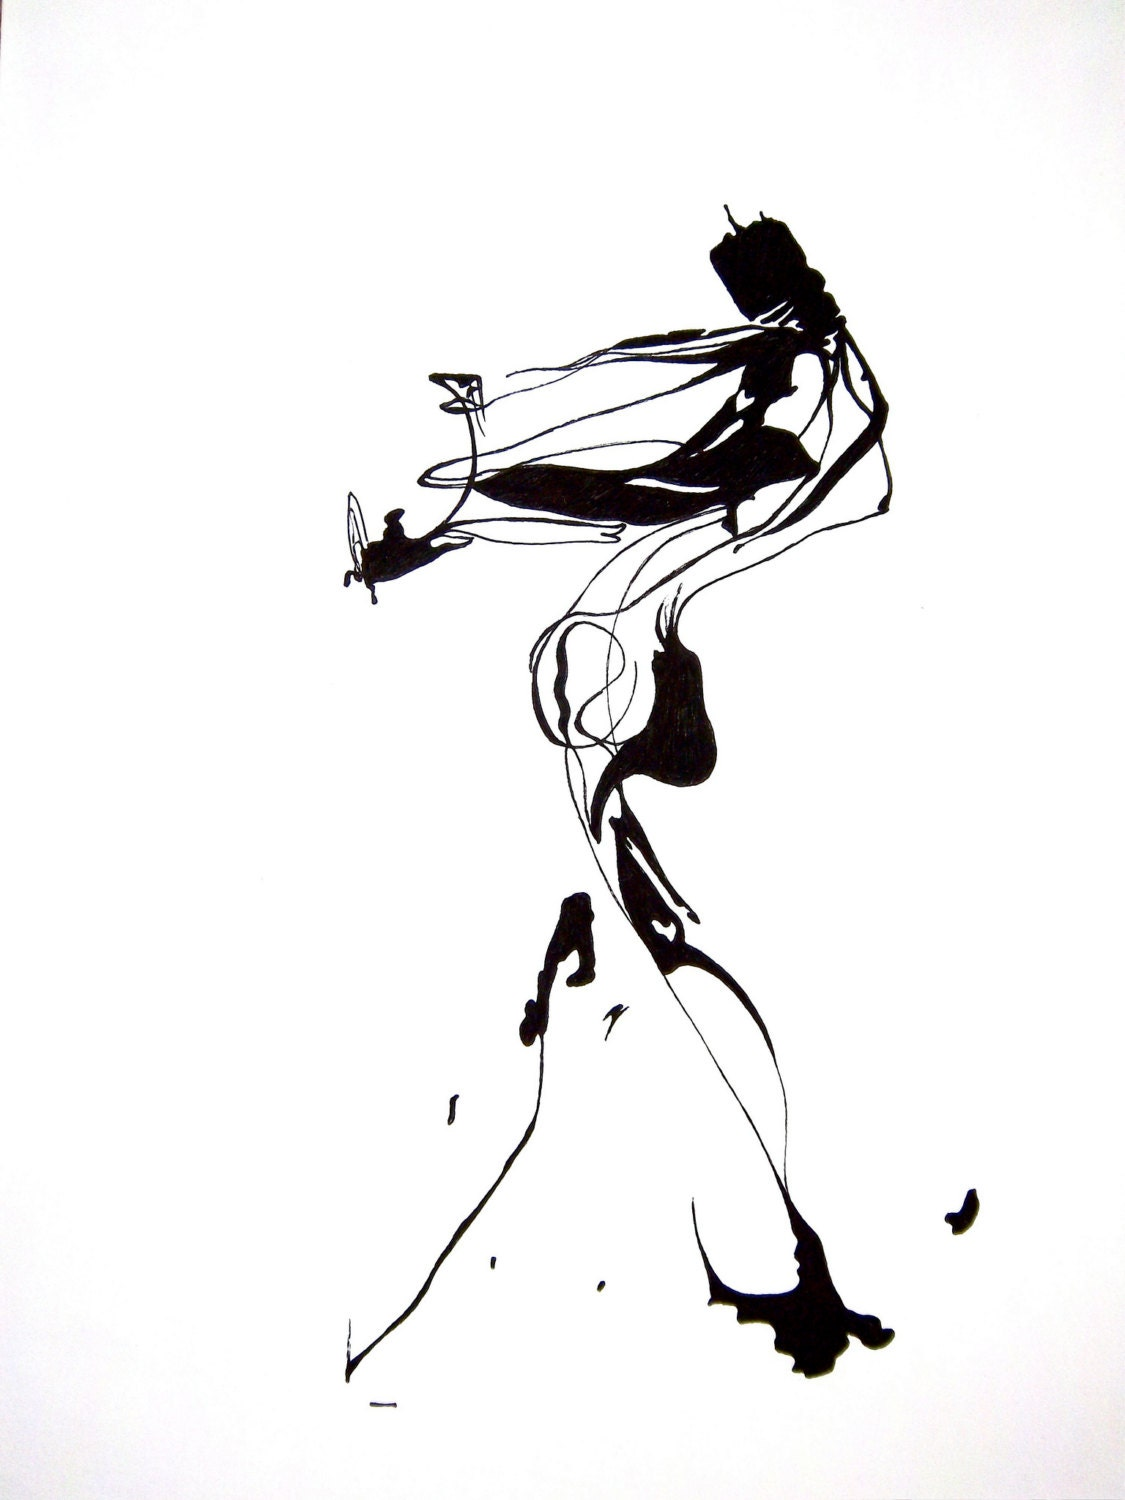 Line Drawing Human Figure : Abstract human figure ink drawing inspiration pinterest